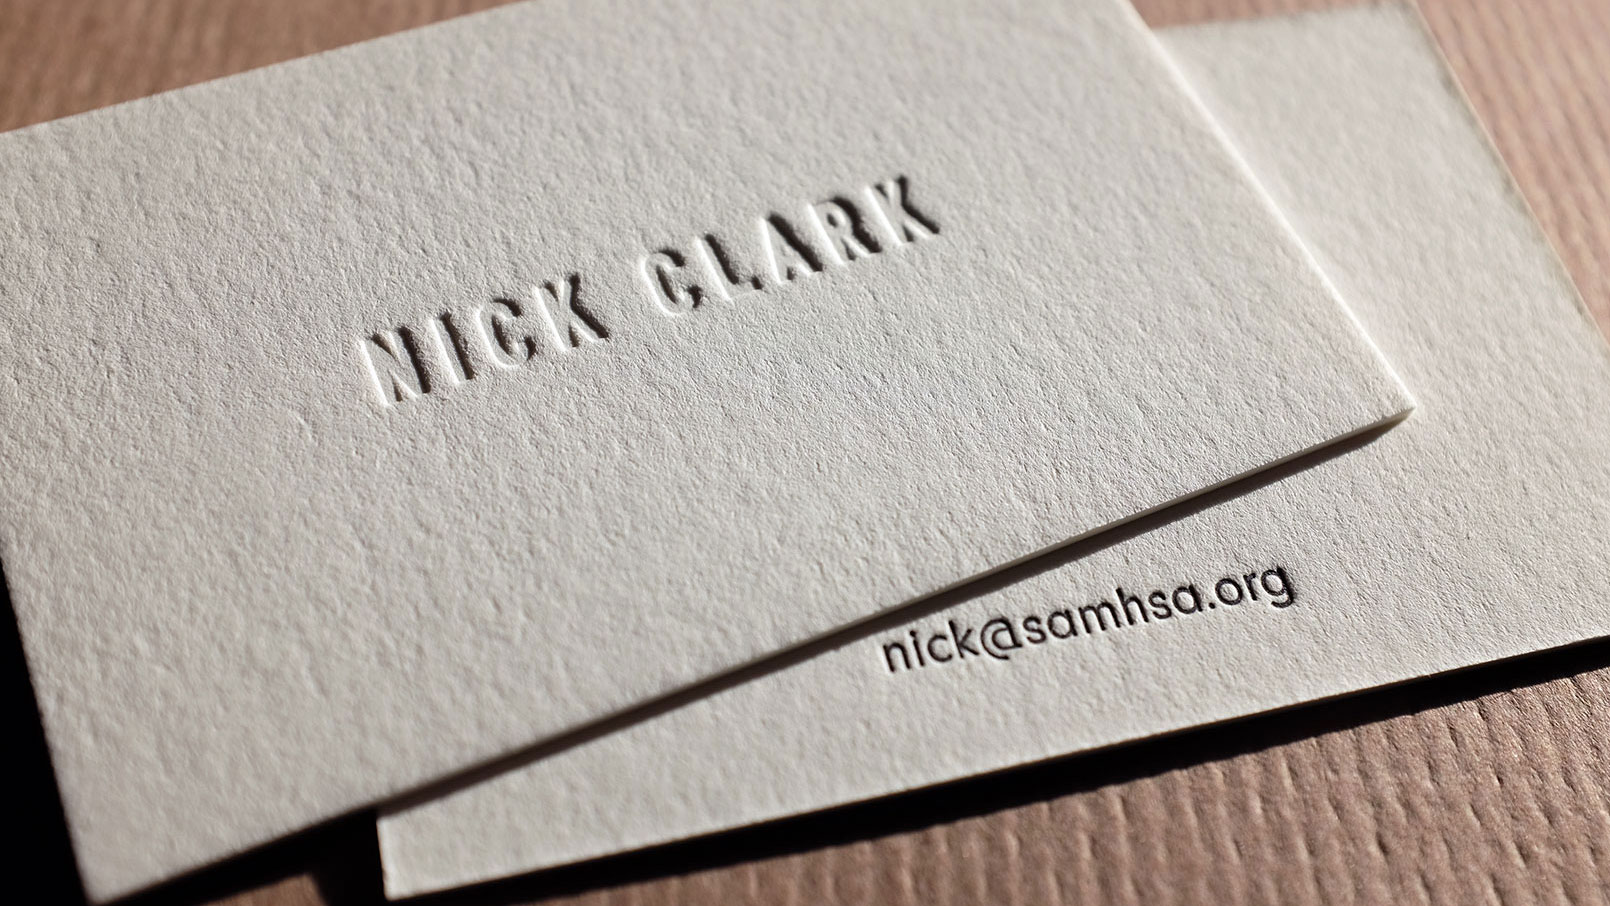 Business cards pritning nyc printing near me bestofprinting letterpress ultra thick business card printing long island reheart Choice Image